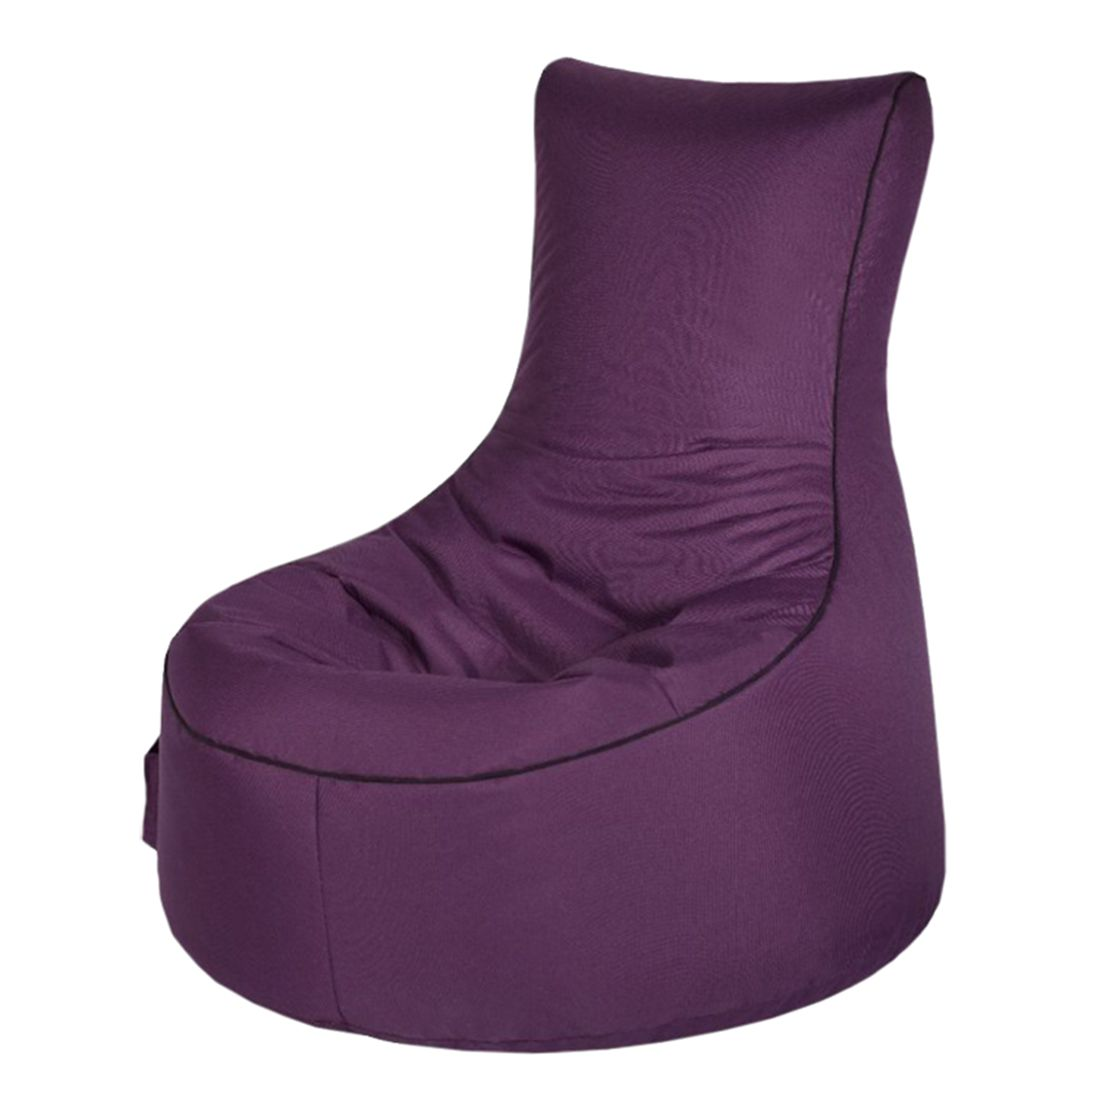 Sitzsack Scuba Swing Young - Aubergine, SITTING POINT